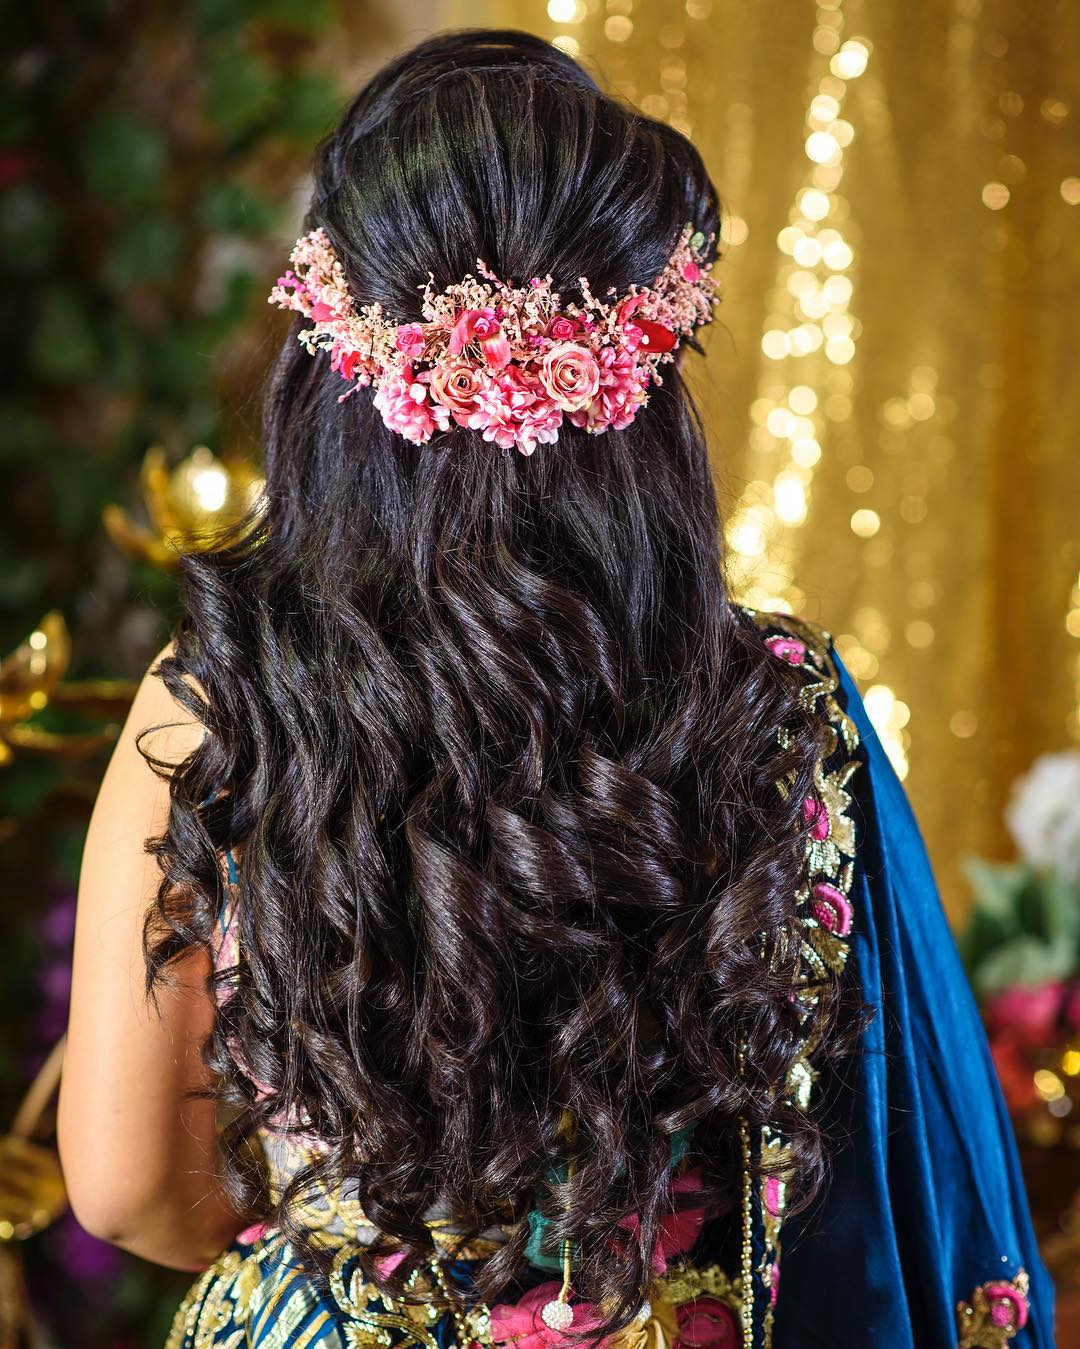 Floral headband: Floral hairstyles for Haldi and Mehendi Ceremonies!a